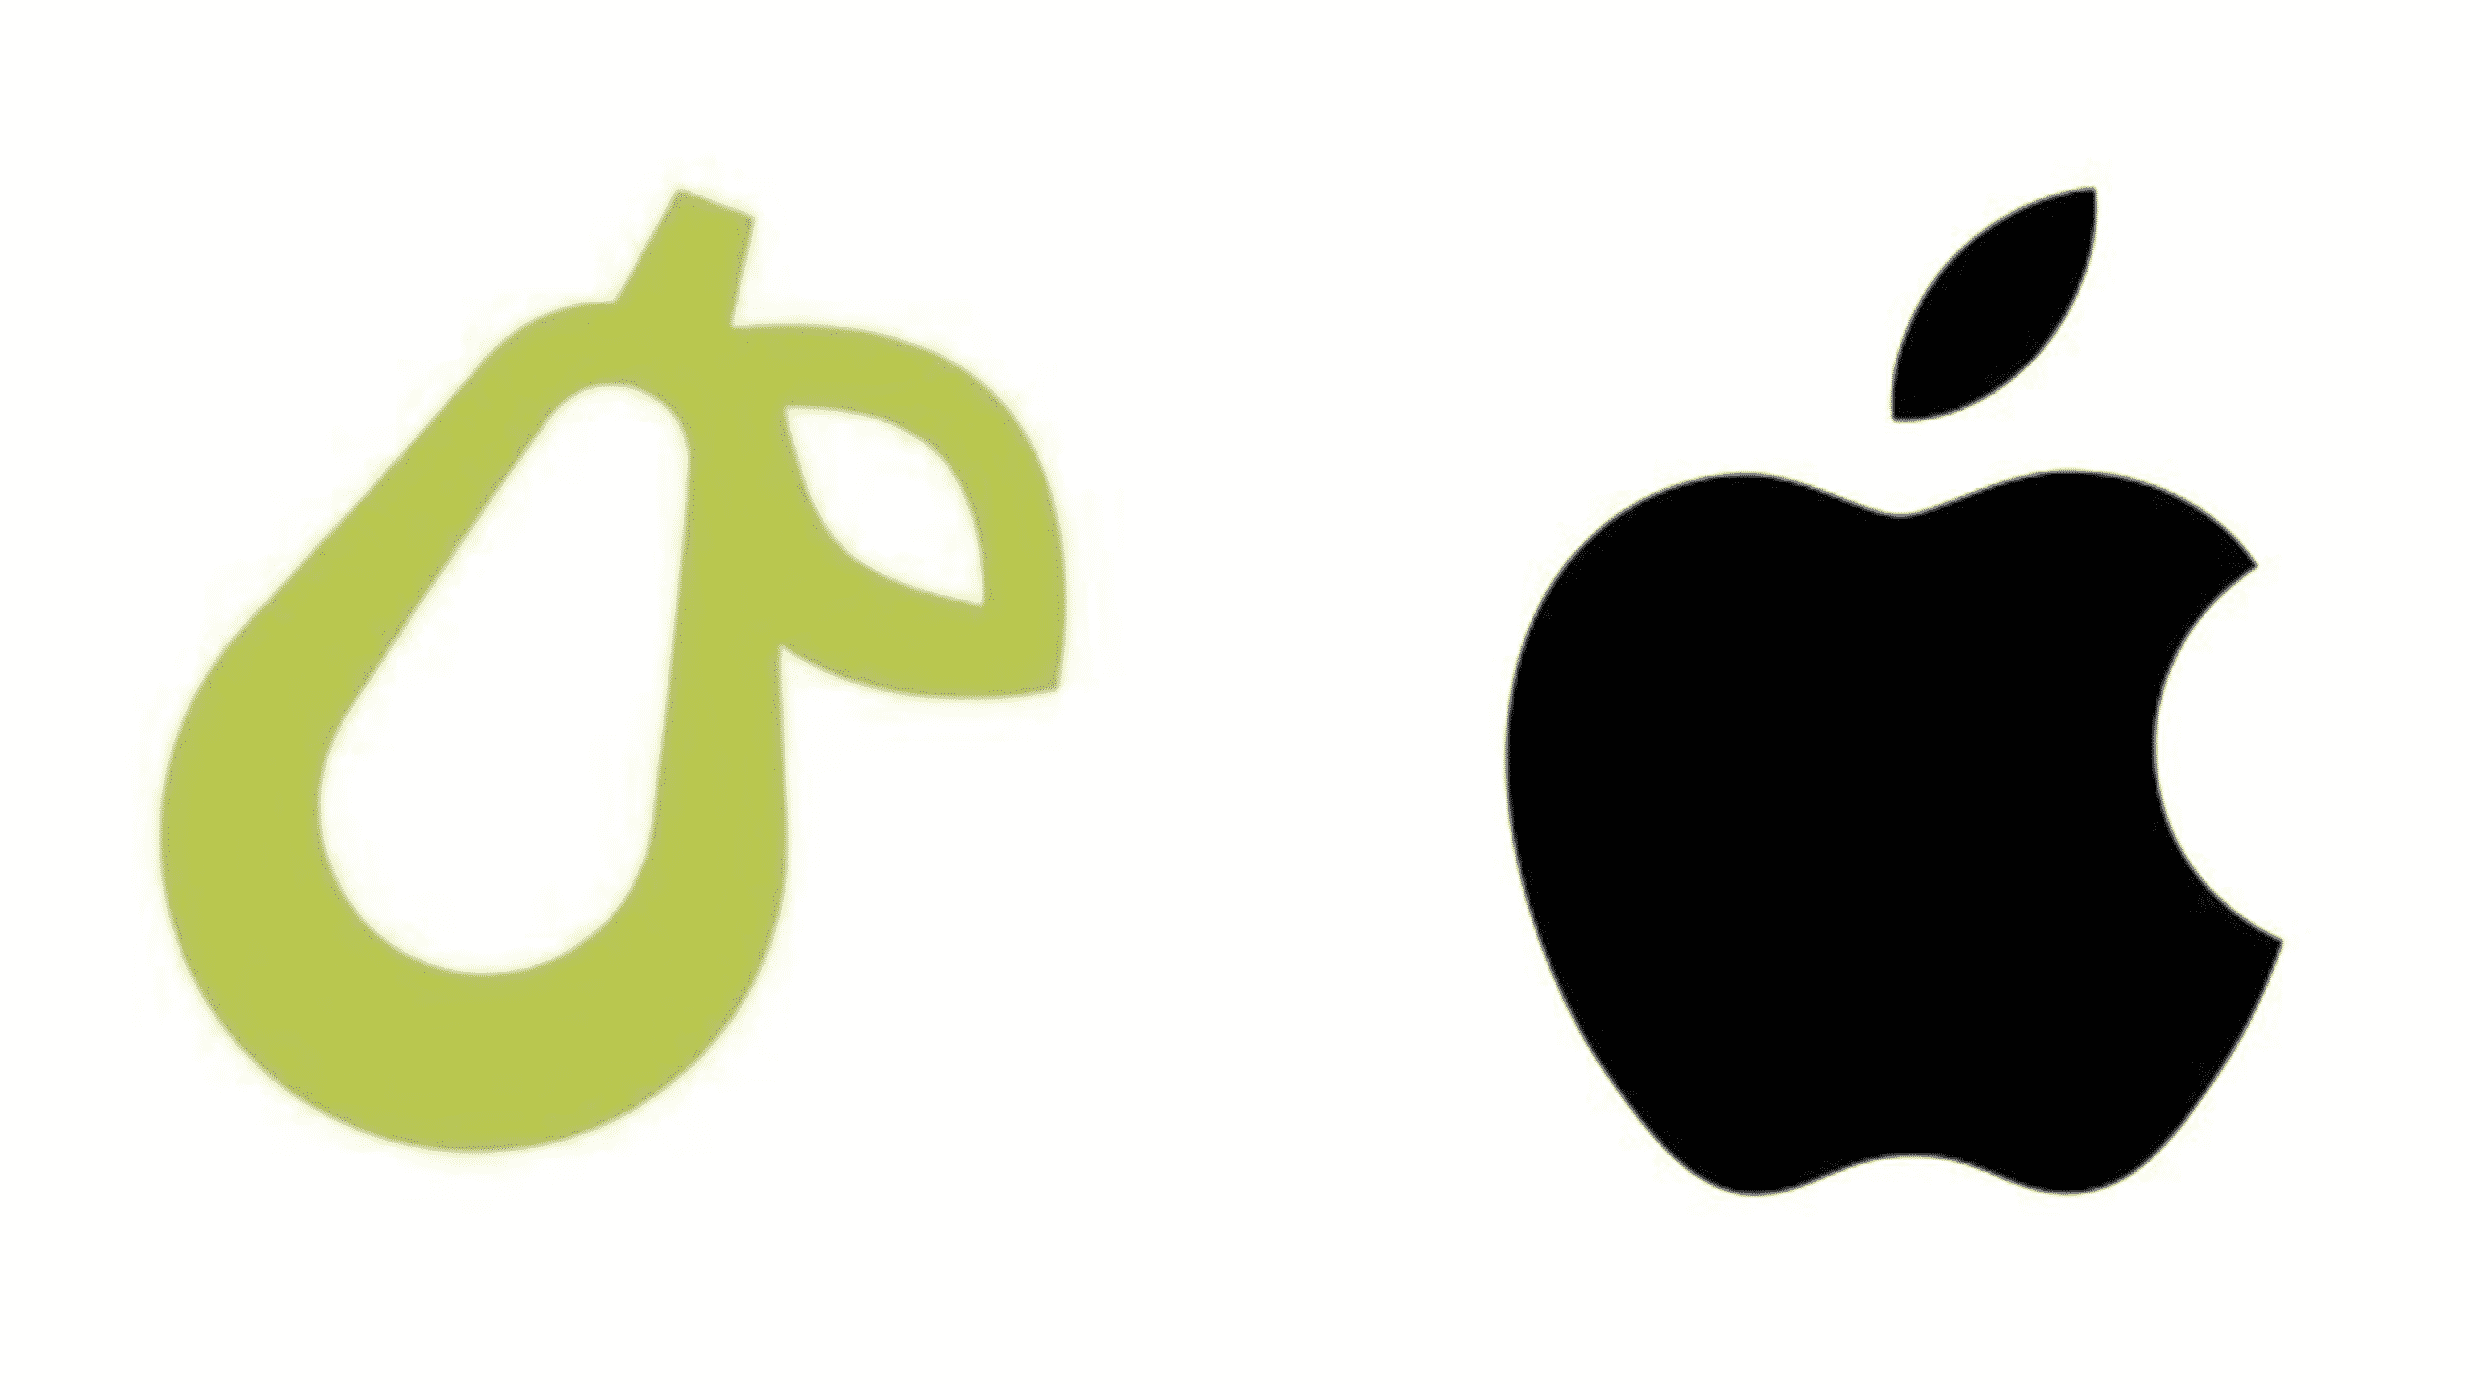 Apple and Prepear